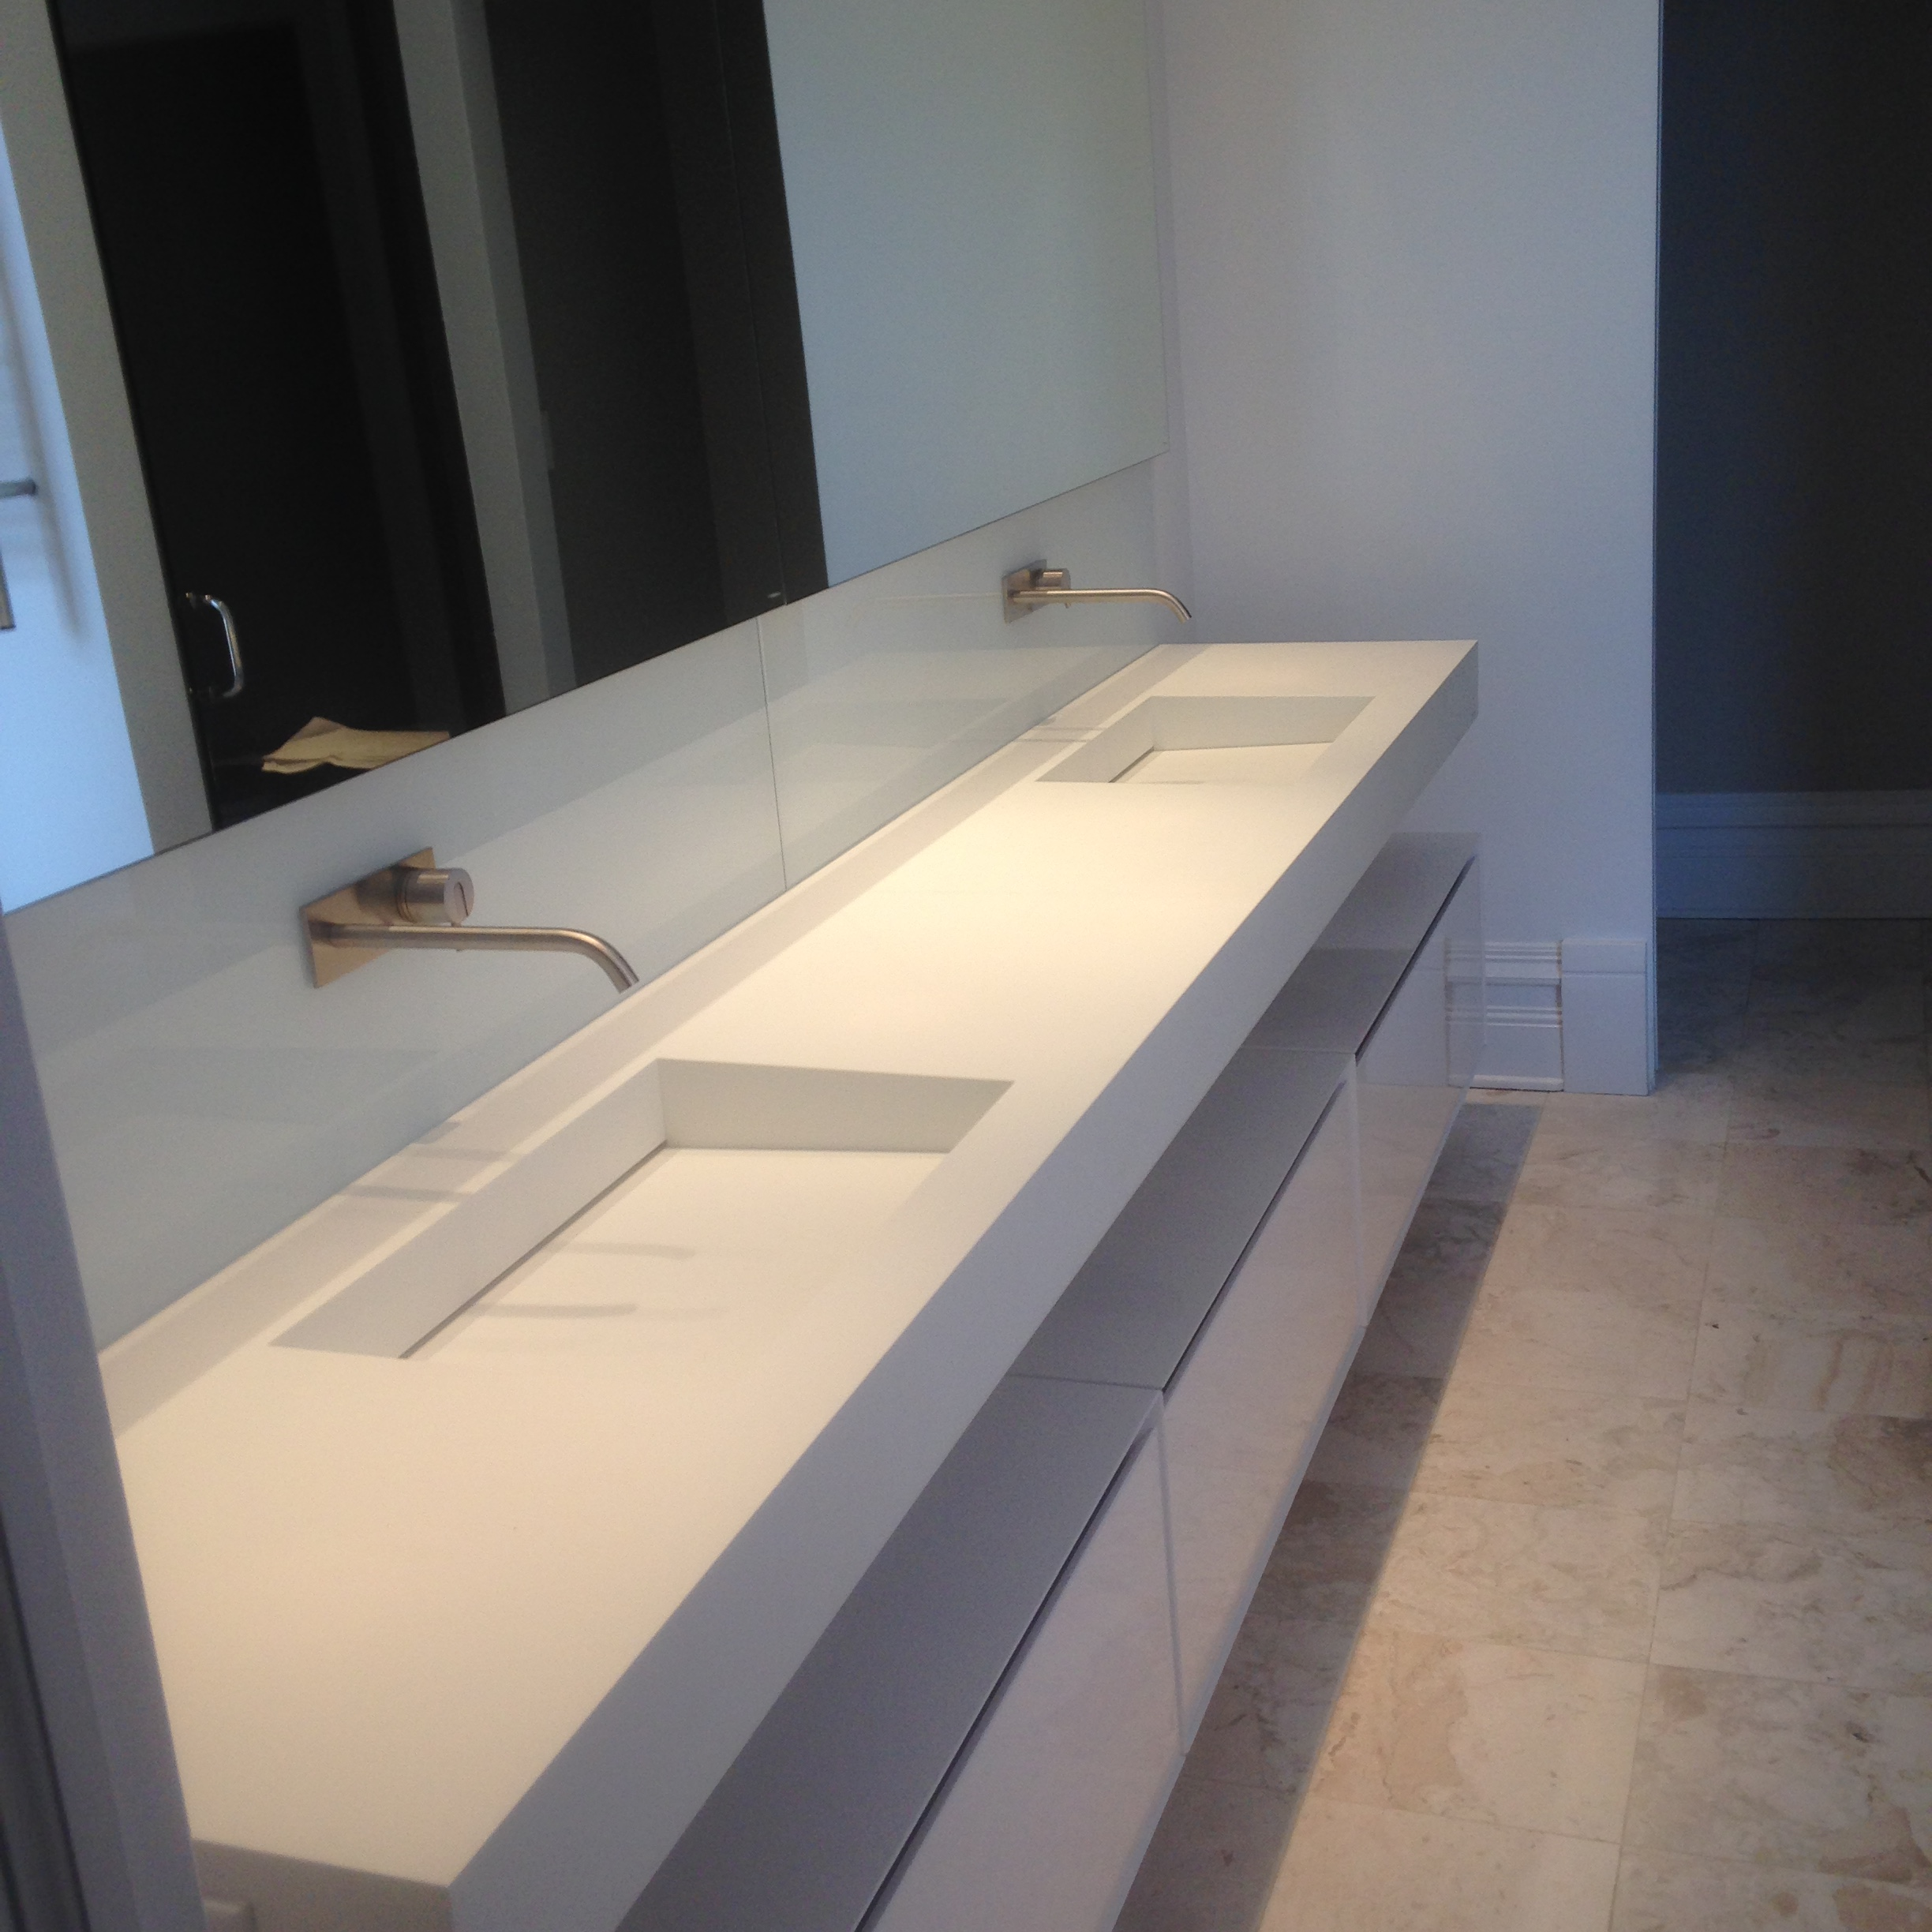 d vanity home wave depot with categories bathroom granite bath top w p canada tops in the napoli x inch vanities en